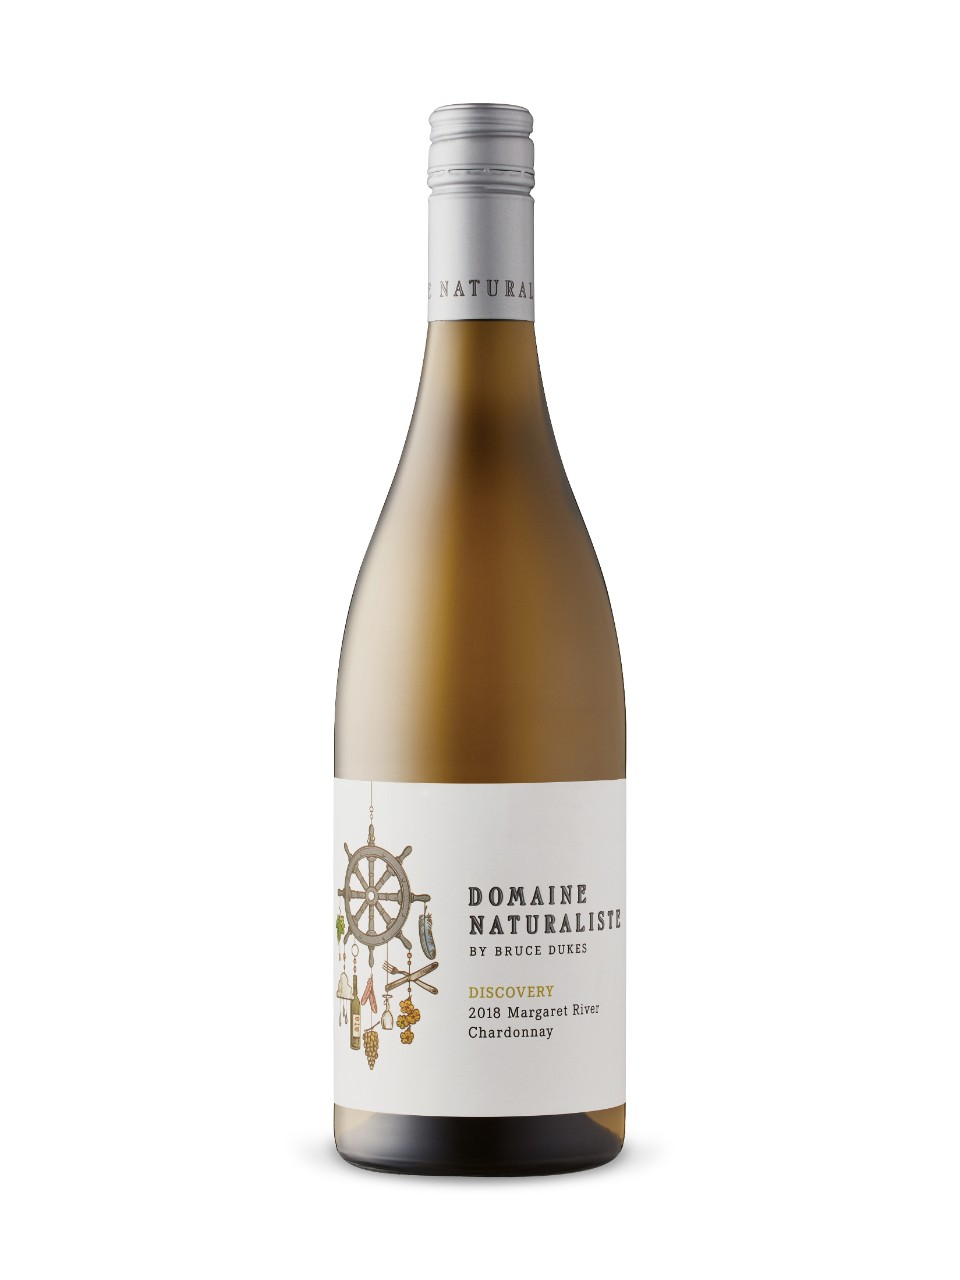 Chardonnay Discovery Domaine Naturaliste 2016